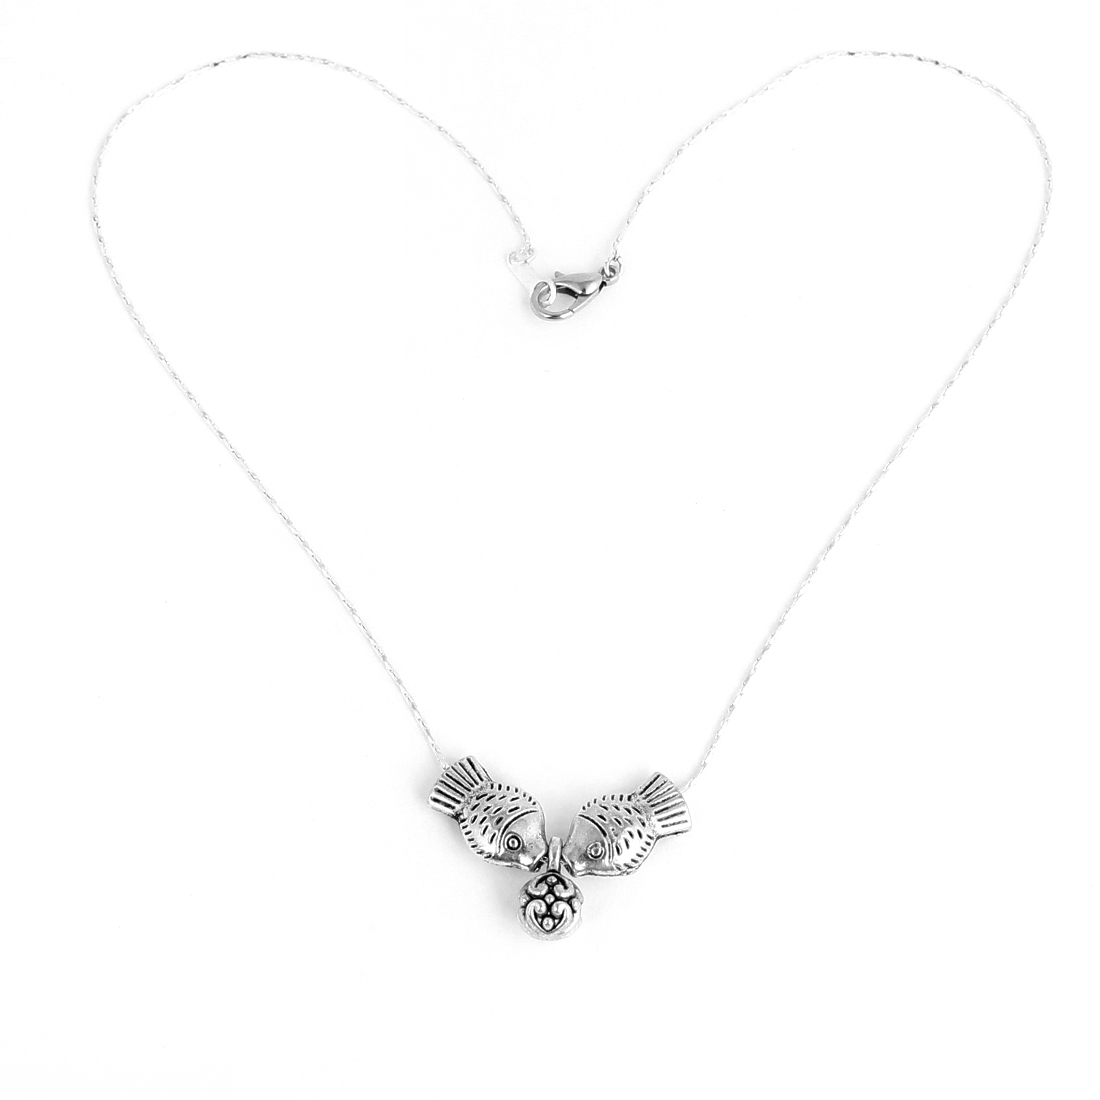 Woman Girl Silver Tone Chain Kissing Fish Pendant Necklace Decoration